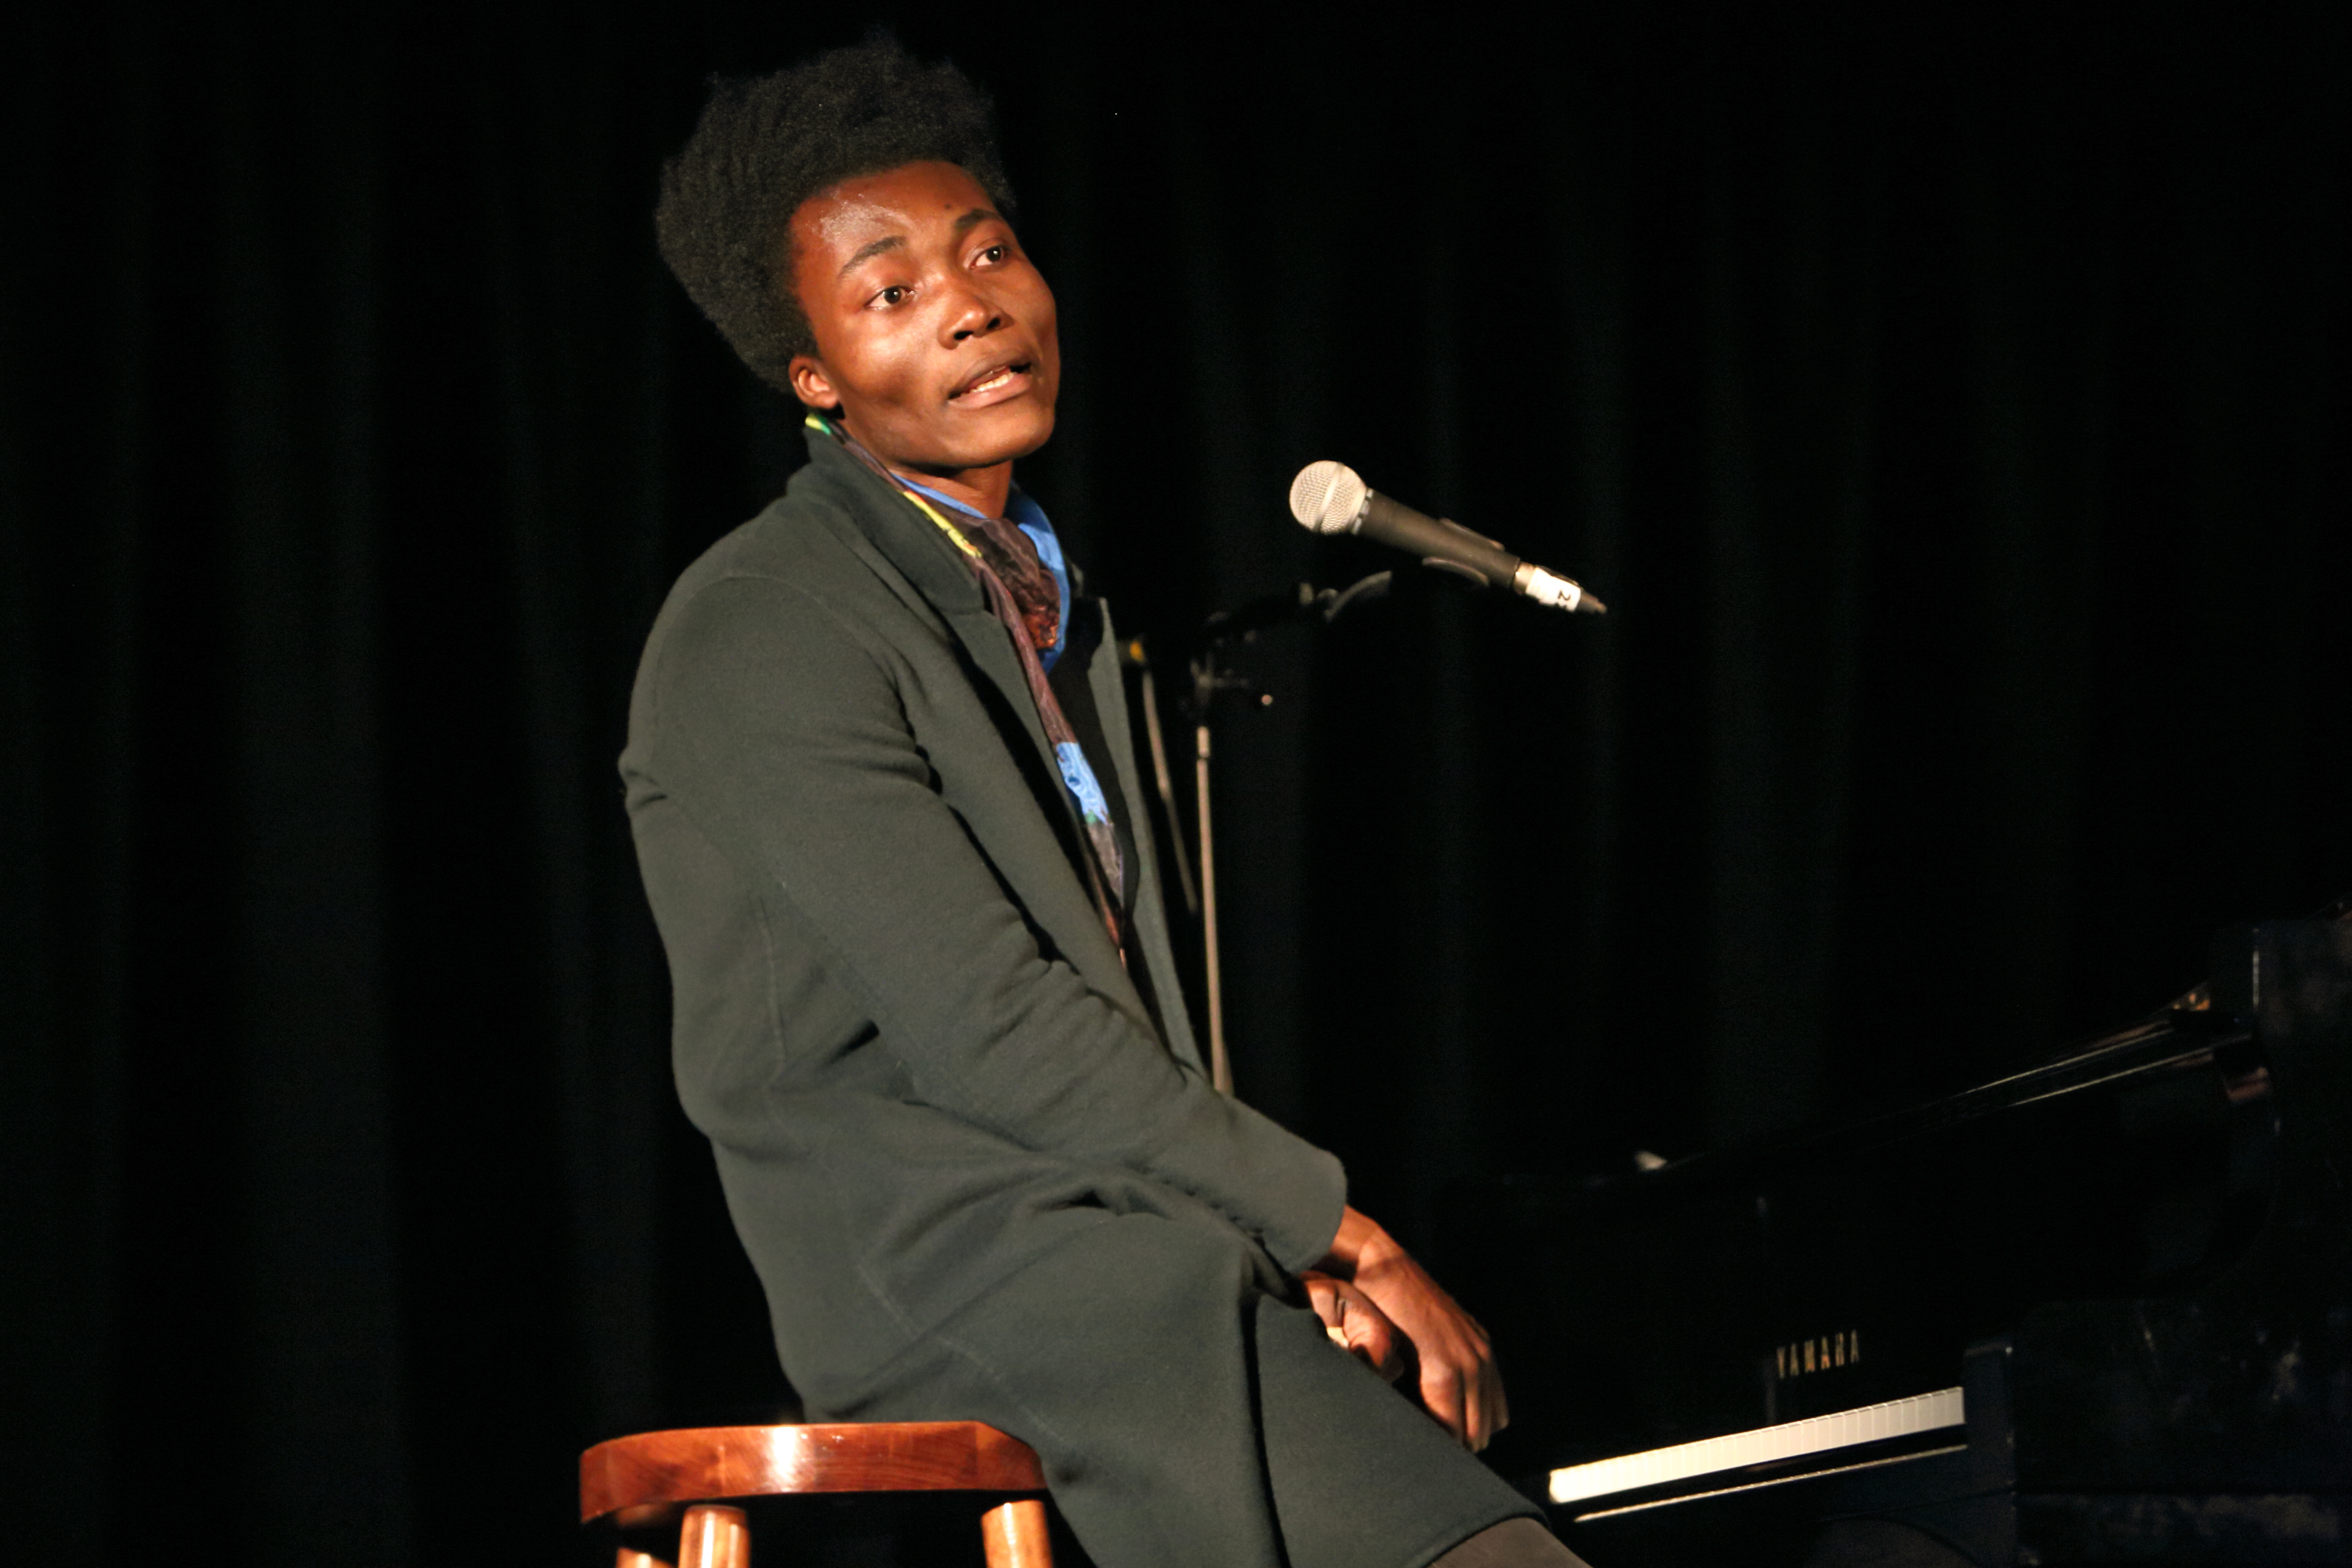 LONDON, UNITED KINGDOM - OCTOBER 29: Benjamin Clementine performs on stage at The Emmanuel Centre on October 29, 2014 in Lond